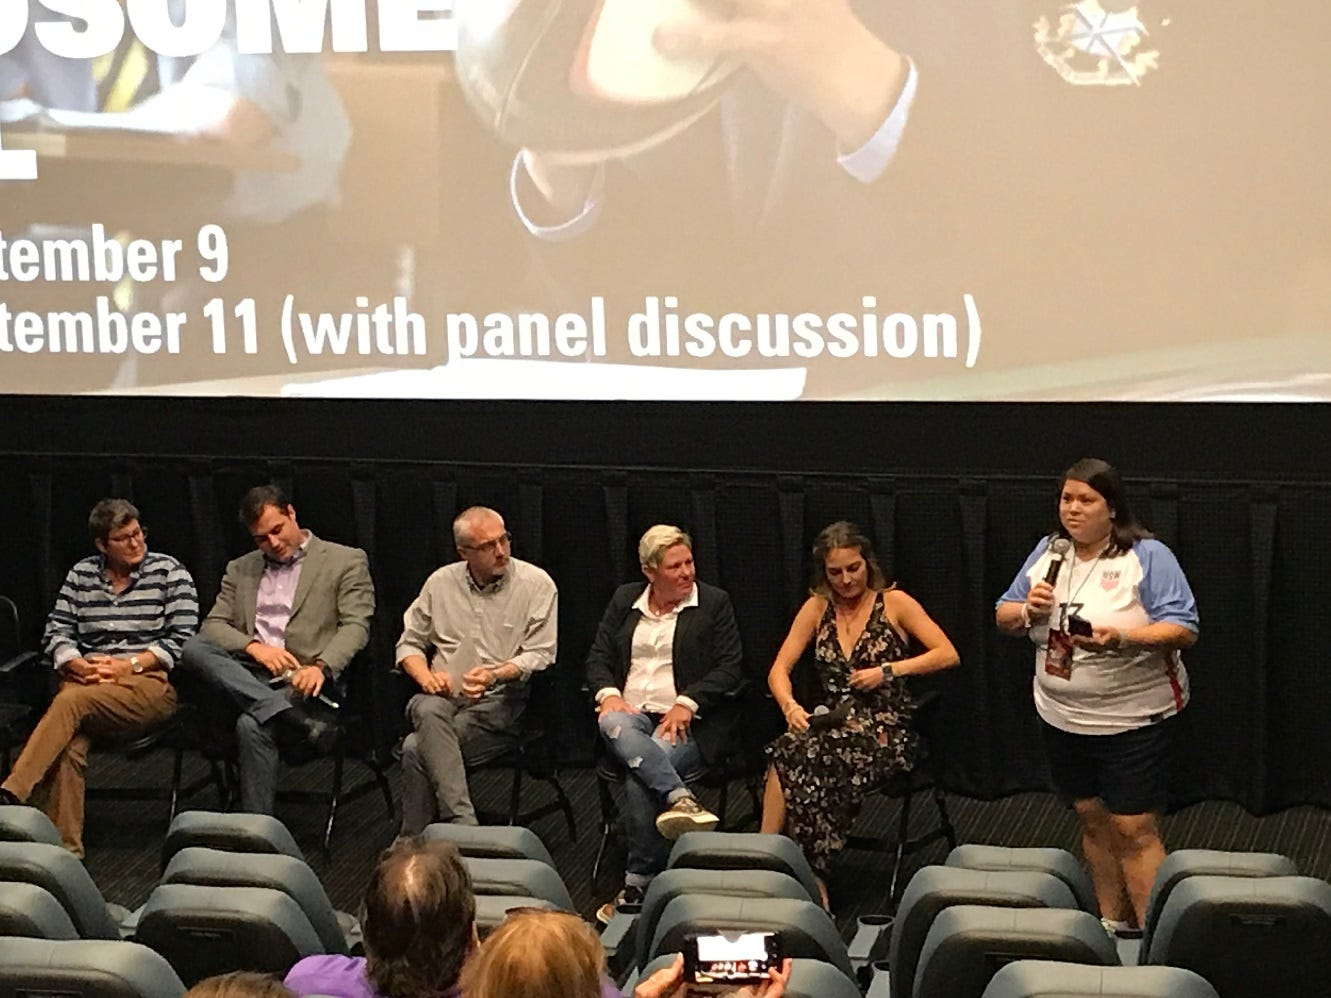 Sexual orientation panel discussion